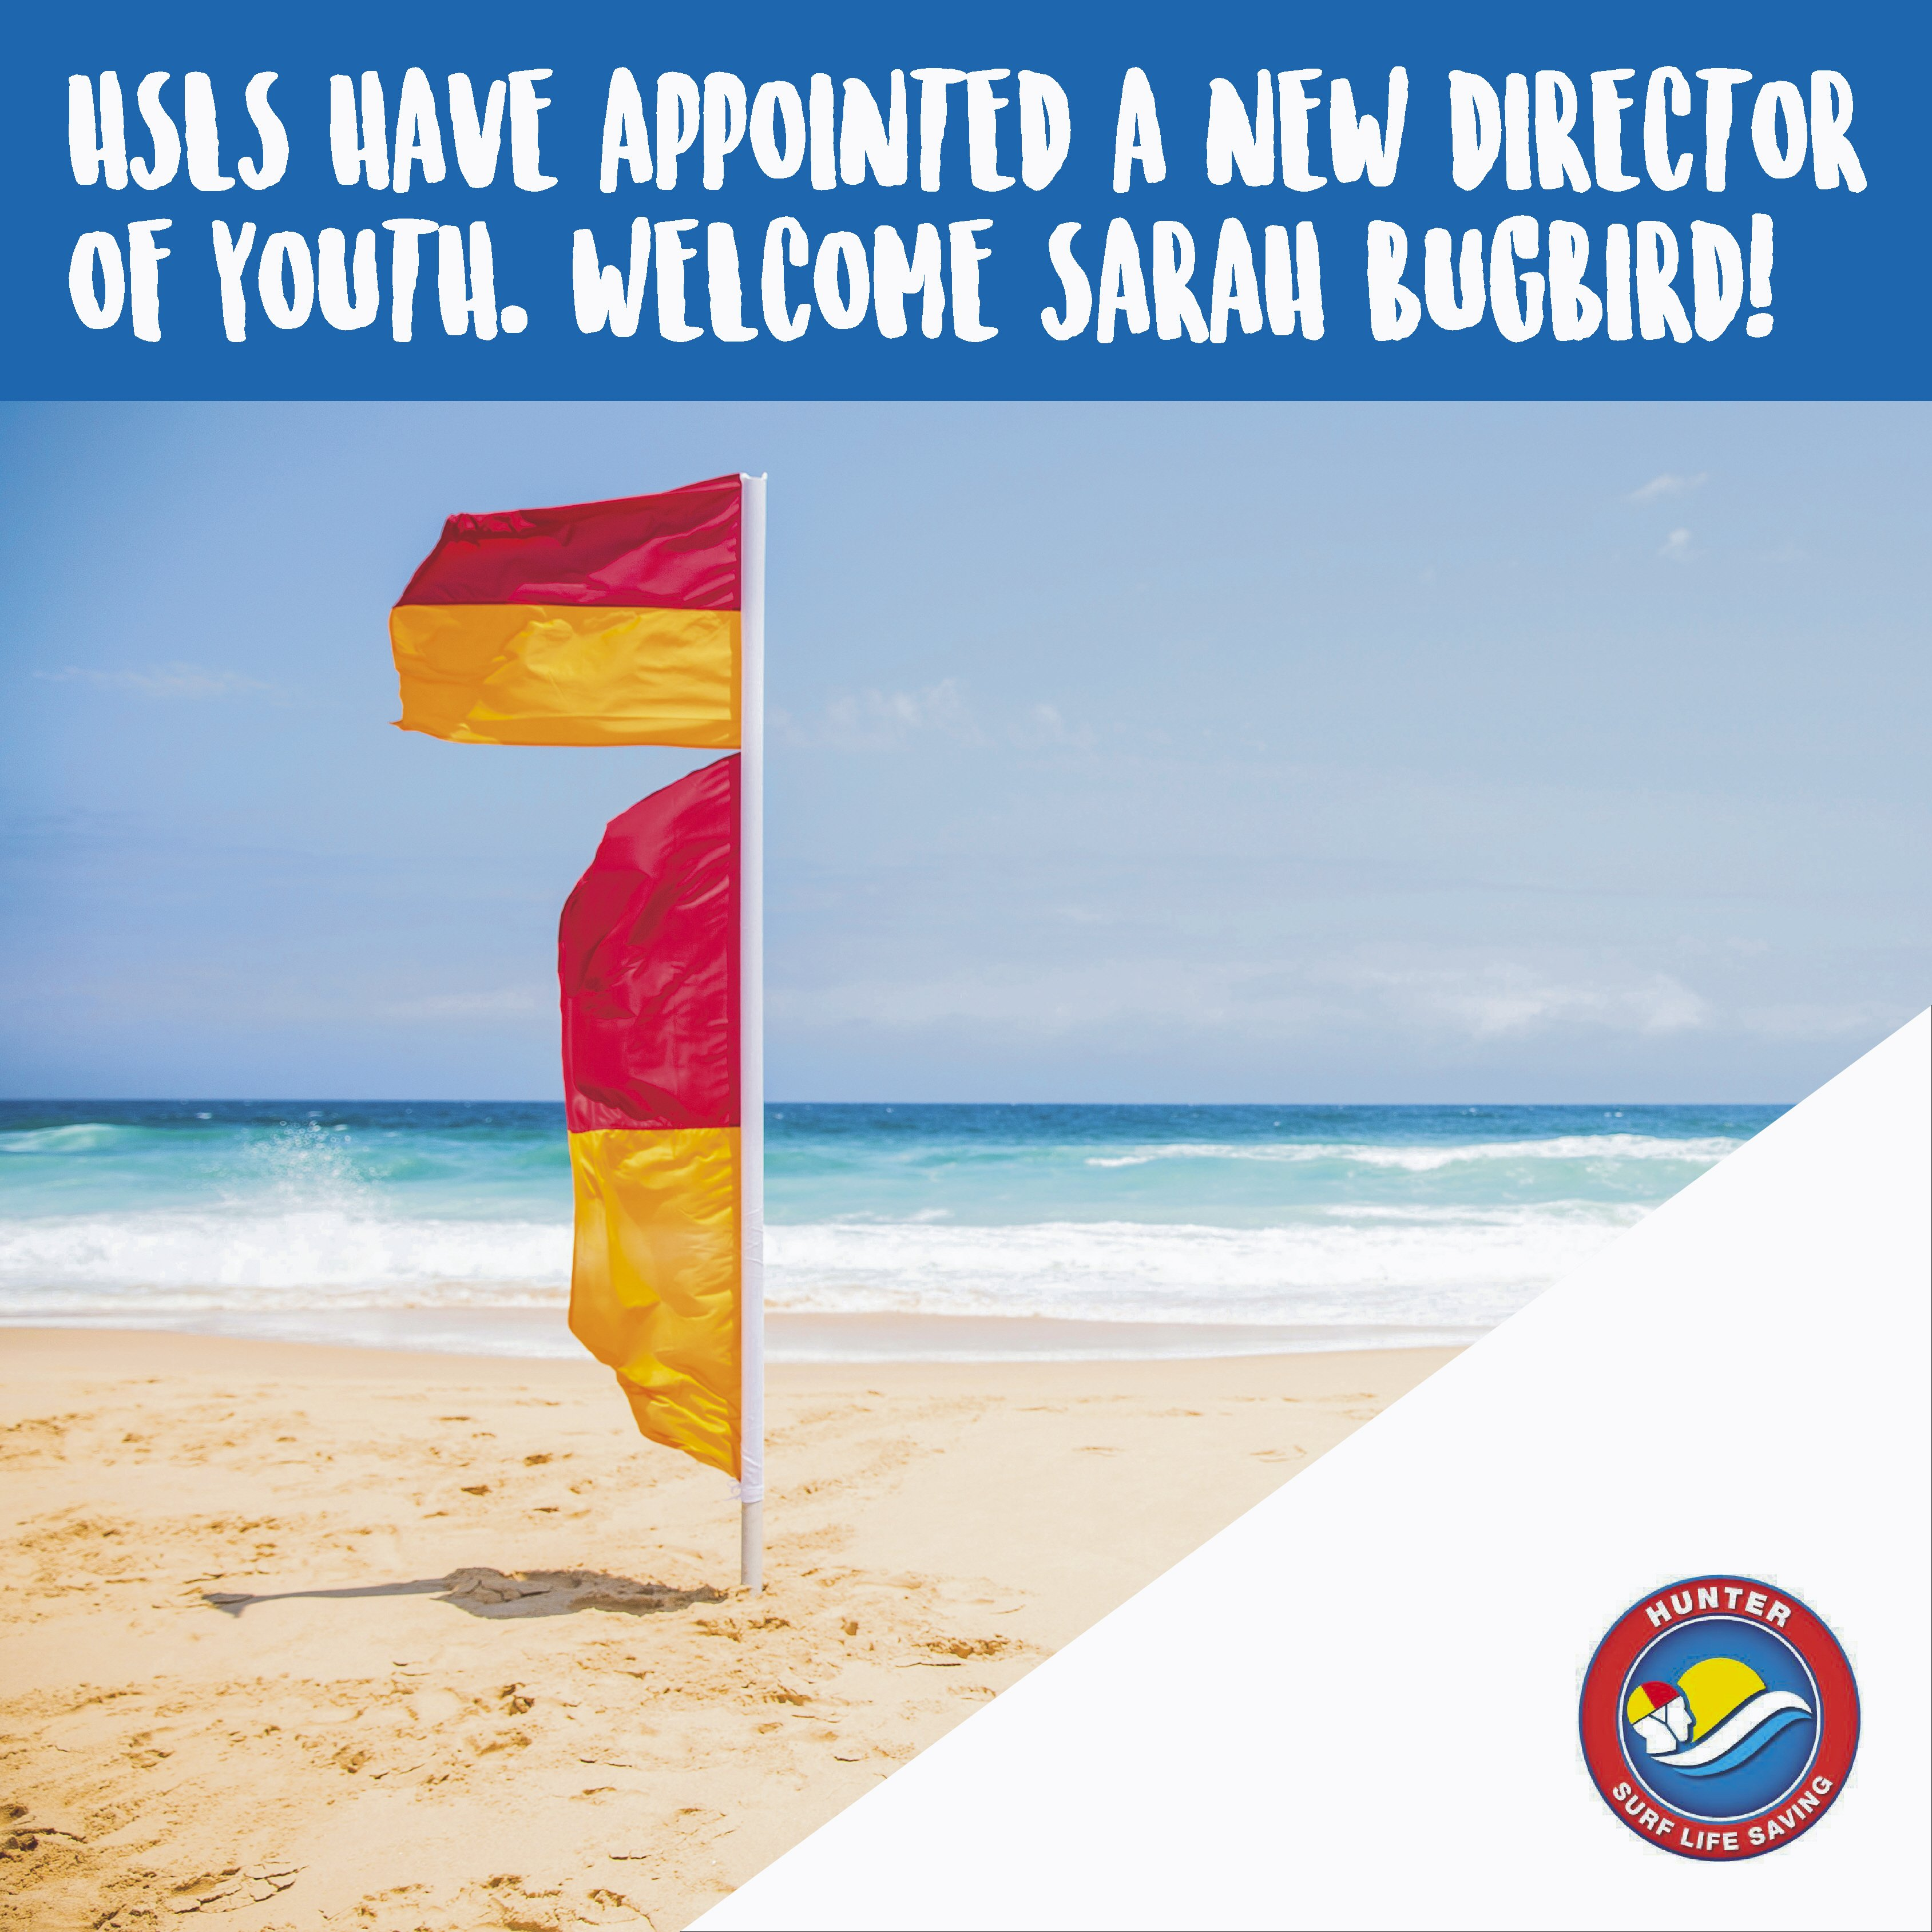 Hunter Surf Lifesaving have appointed a new Director of Youth